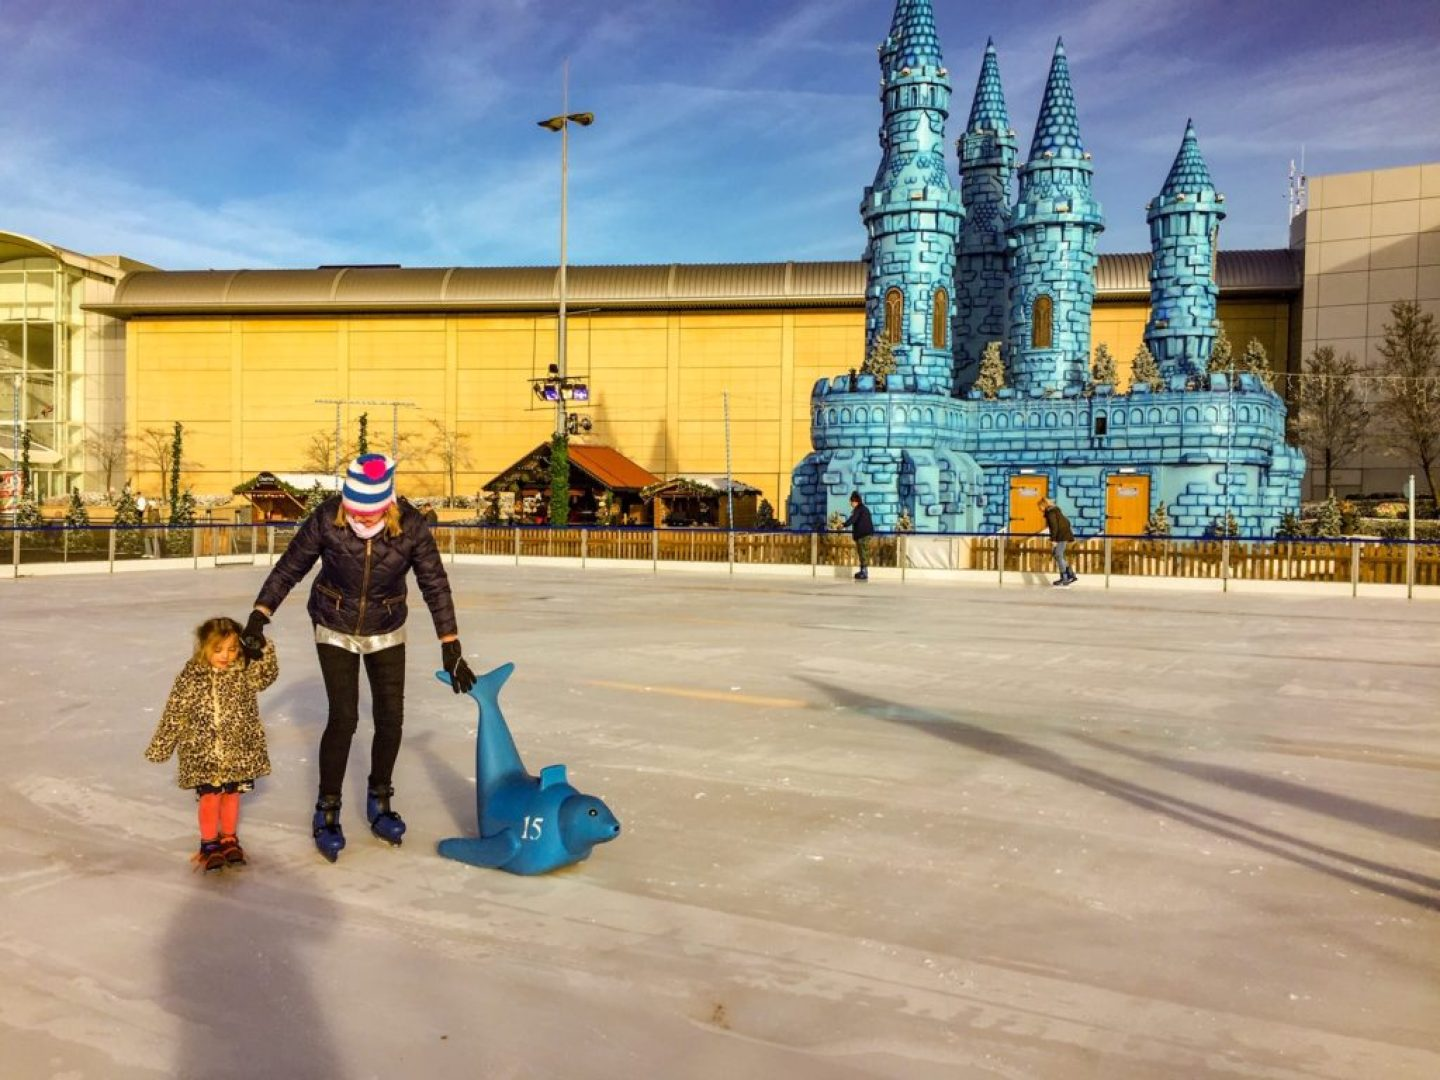 Just off the motorway - The Mall at Cribbs Causeway_ice rink_enchanted castle